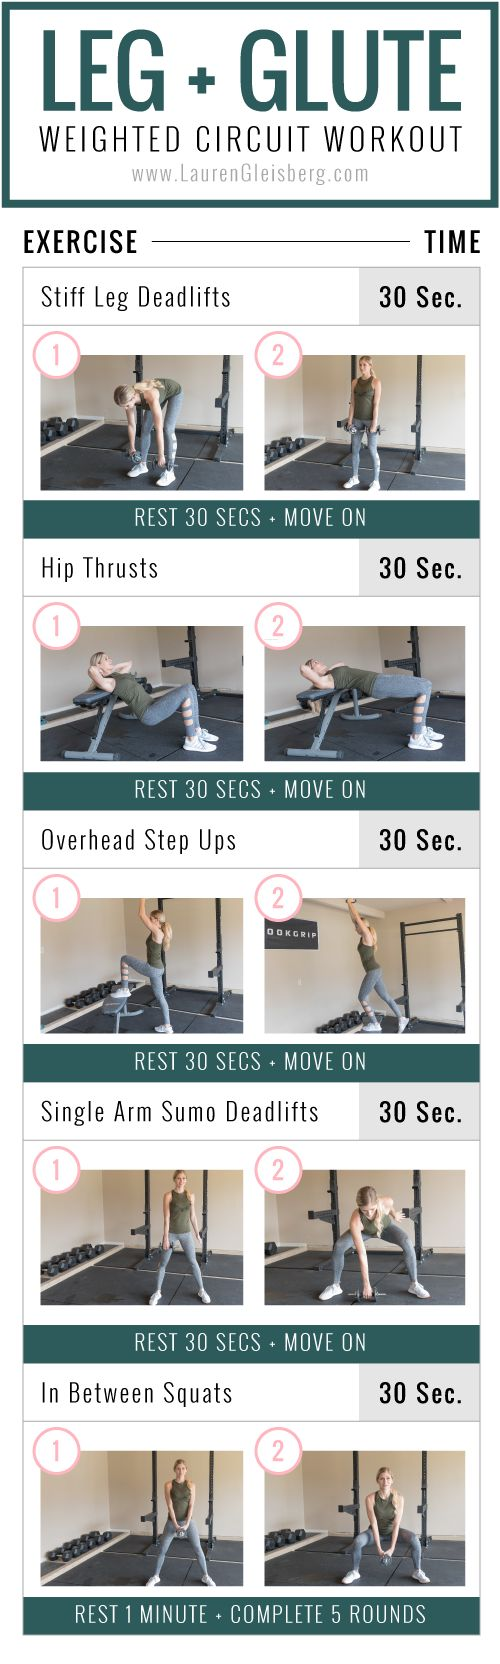 Leg + Glute Workout | Fitmas Challenge Week 1 Day 1 by LaurenGleisberg.com